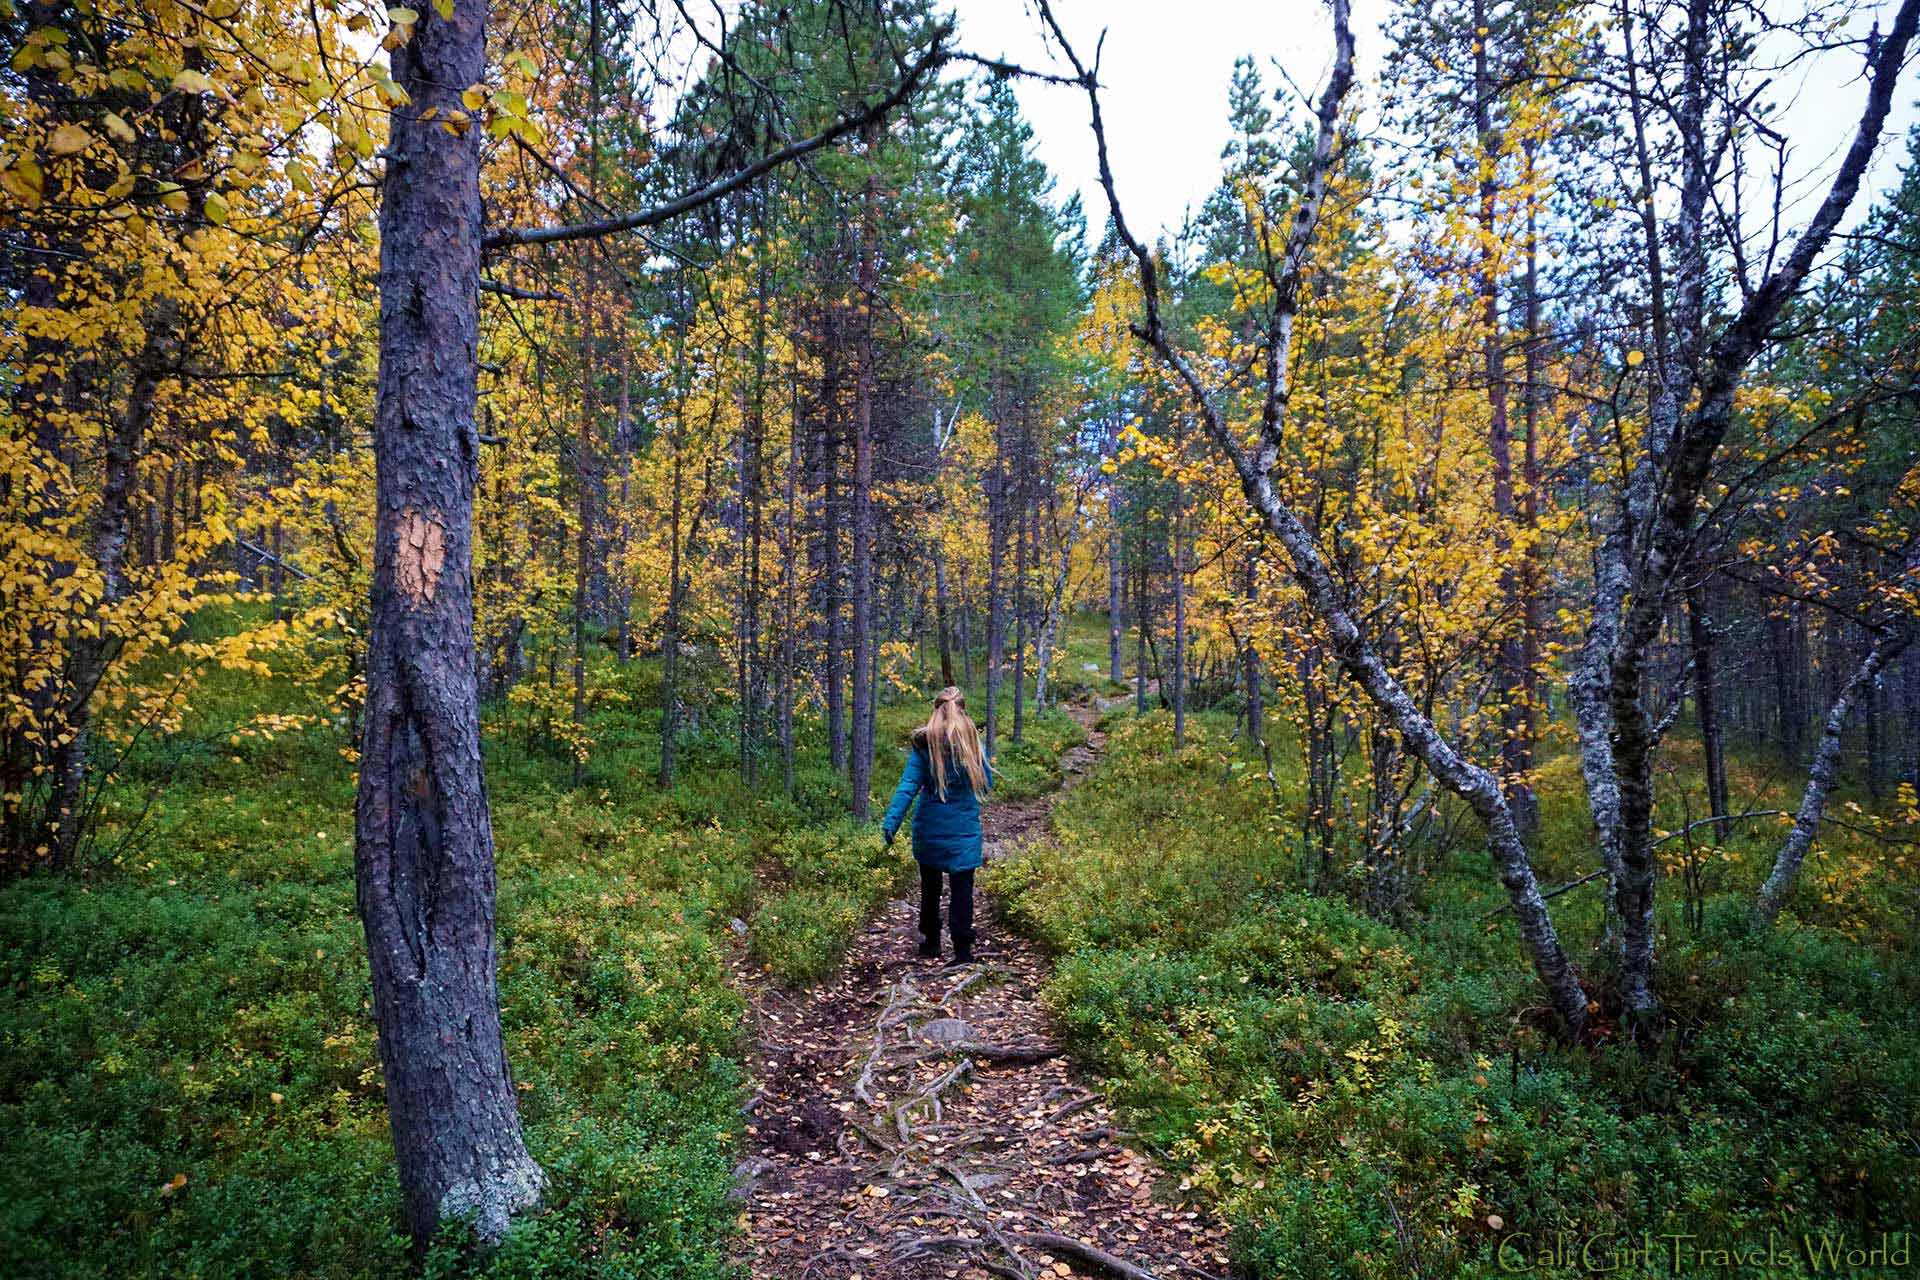 Cali Girl Travels World walking along a pathway in Inari, Finland through a forest of yellow leafed trees.